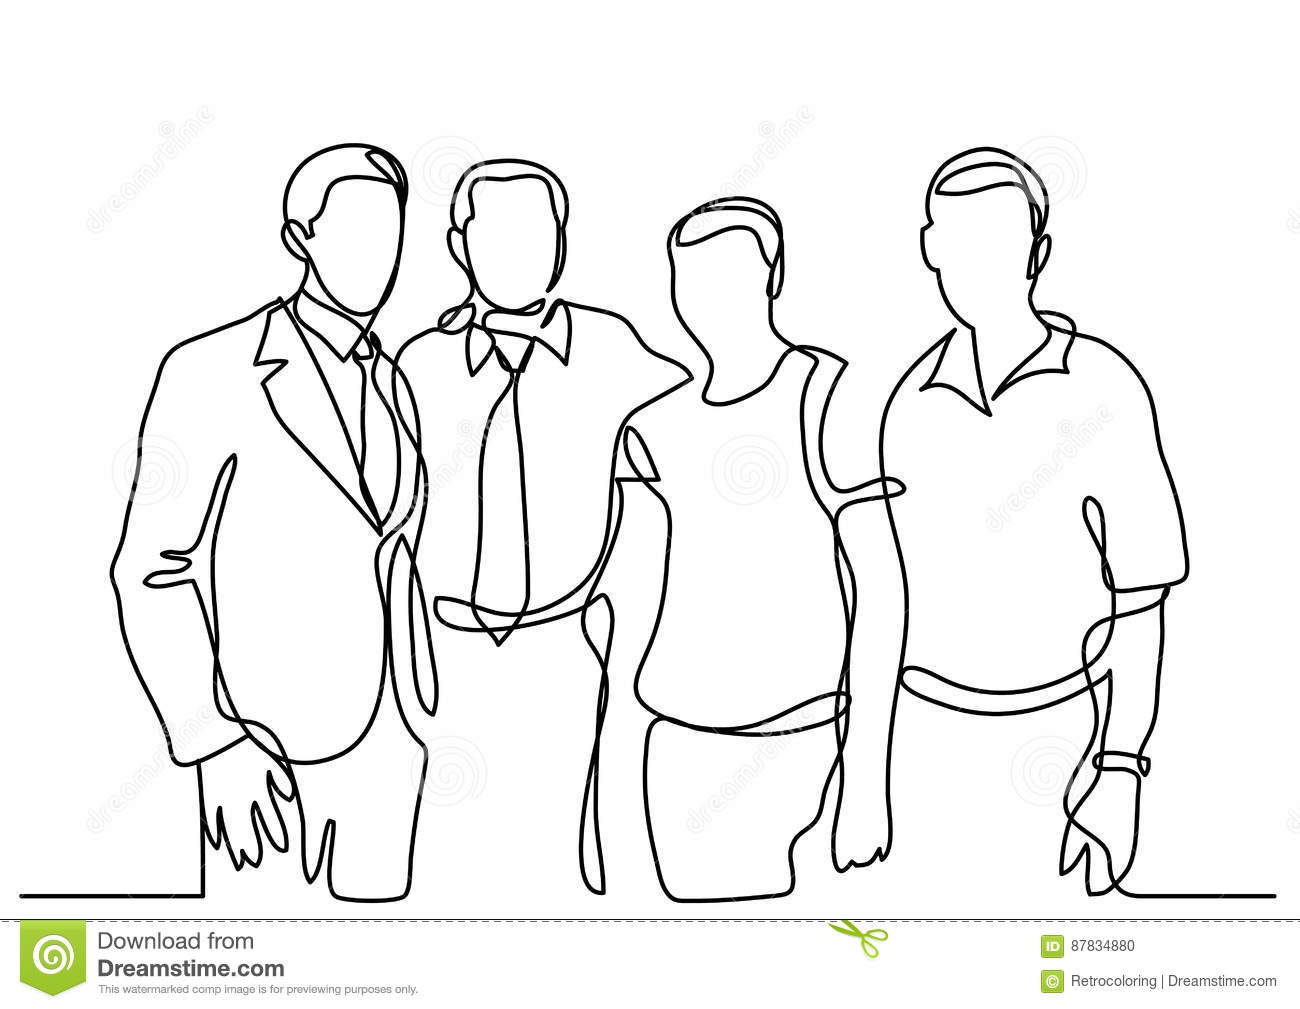 Continuous line drawing of business team